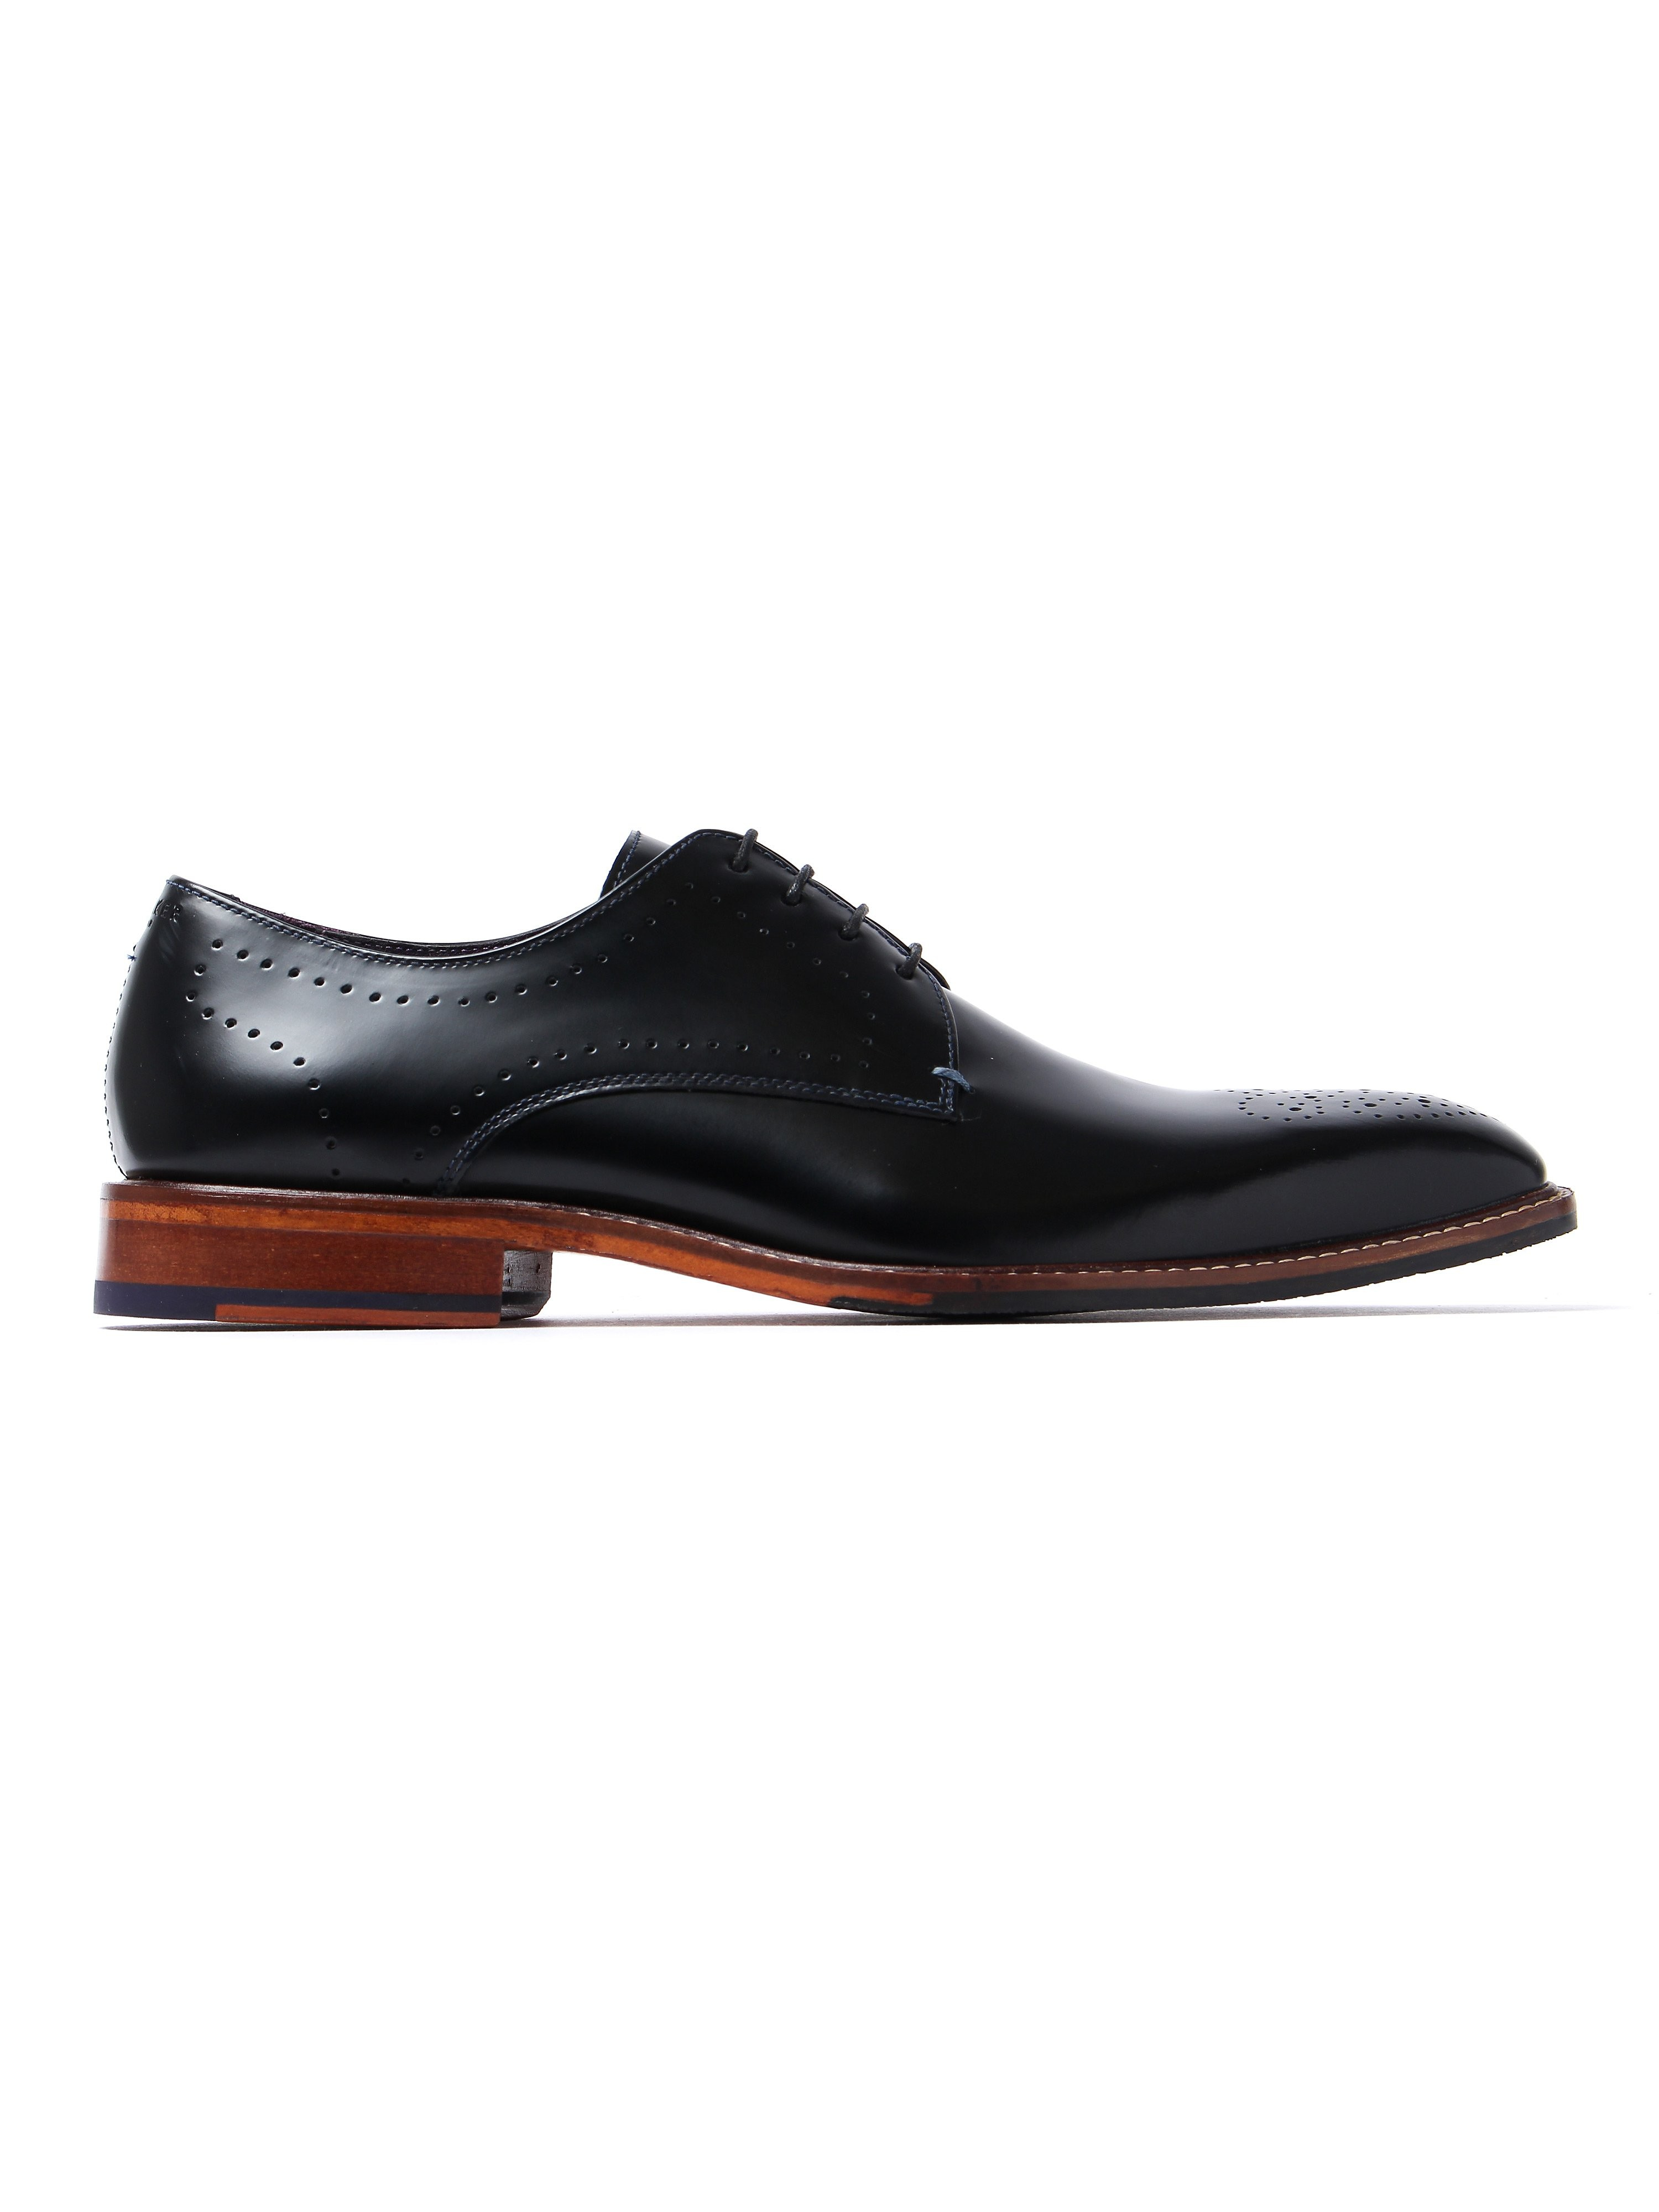 Ted Baker Men's Marar High Shine Derby Shoes - Black Leather